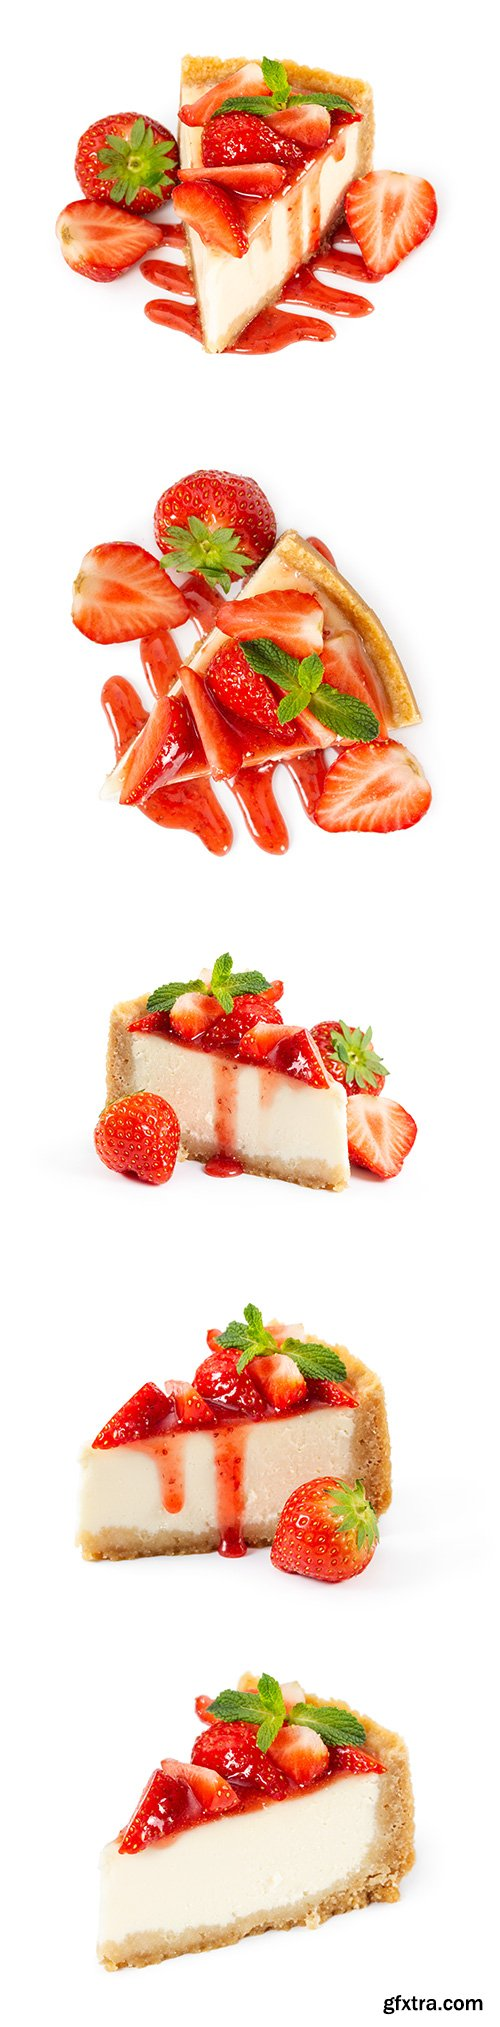 Piece Of Cheesecake With Fresh Strawberries Isolated - 7xJPGs